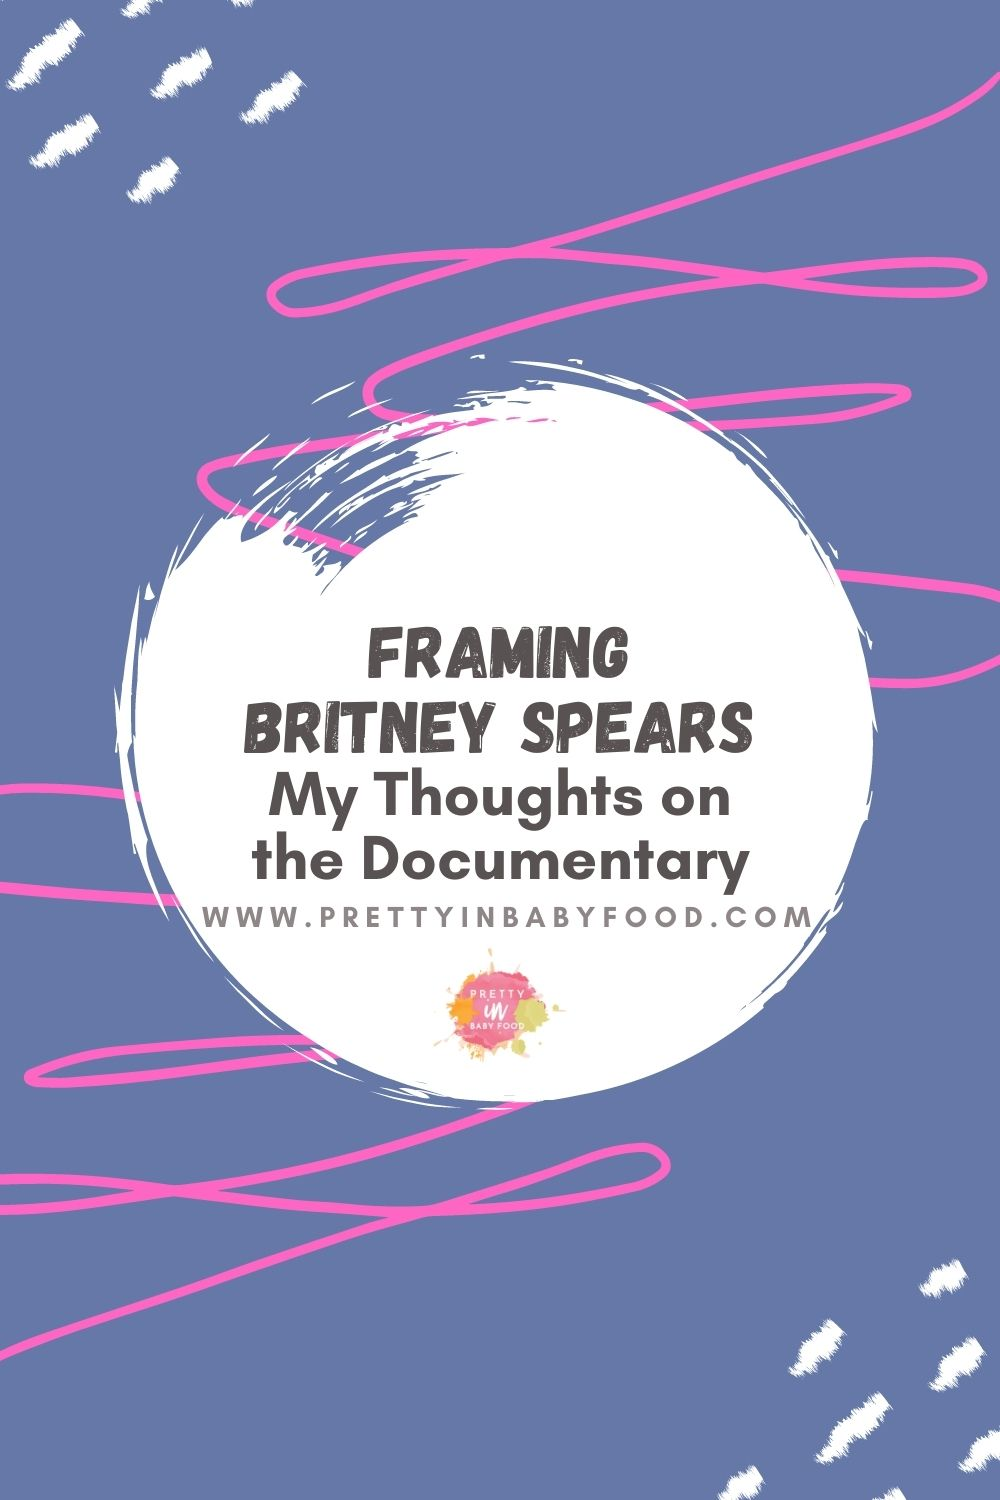 Framing Britney Spears: My Thoughts on the Documentary